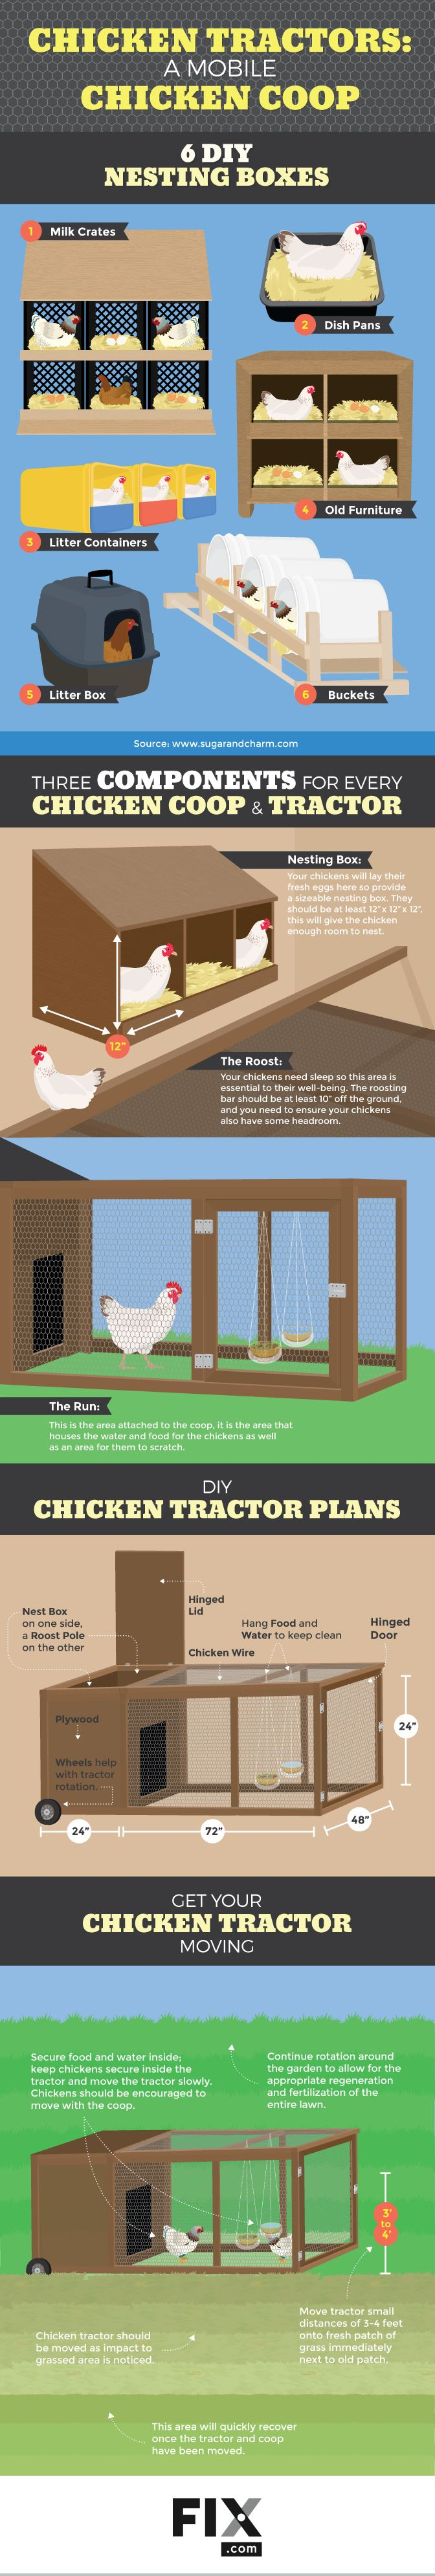 The Chicken Tractor: A Mobile Chicken Coop